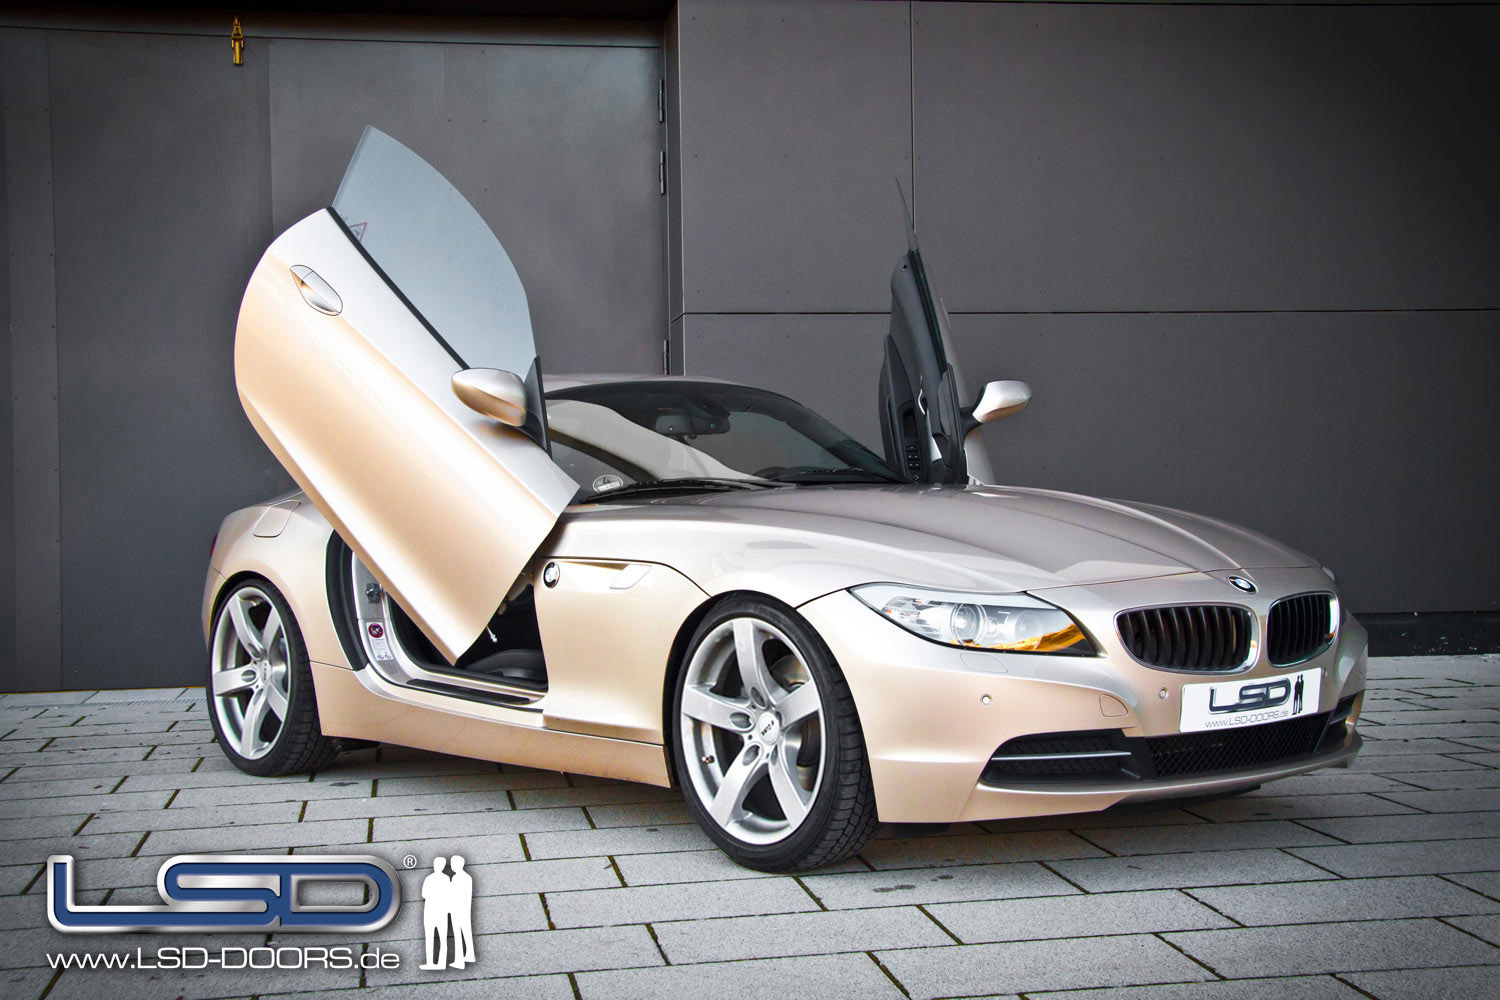 cars gto lsd doors bmw z4. Black Bedroom Furniture Sets. Home Design Ideas